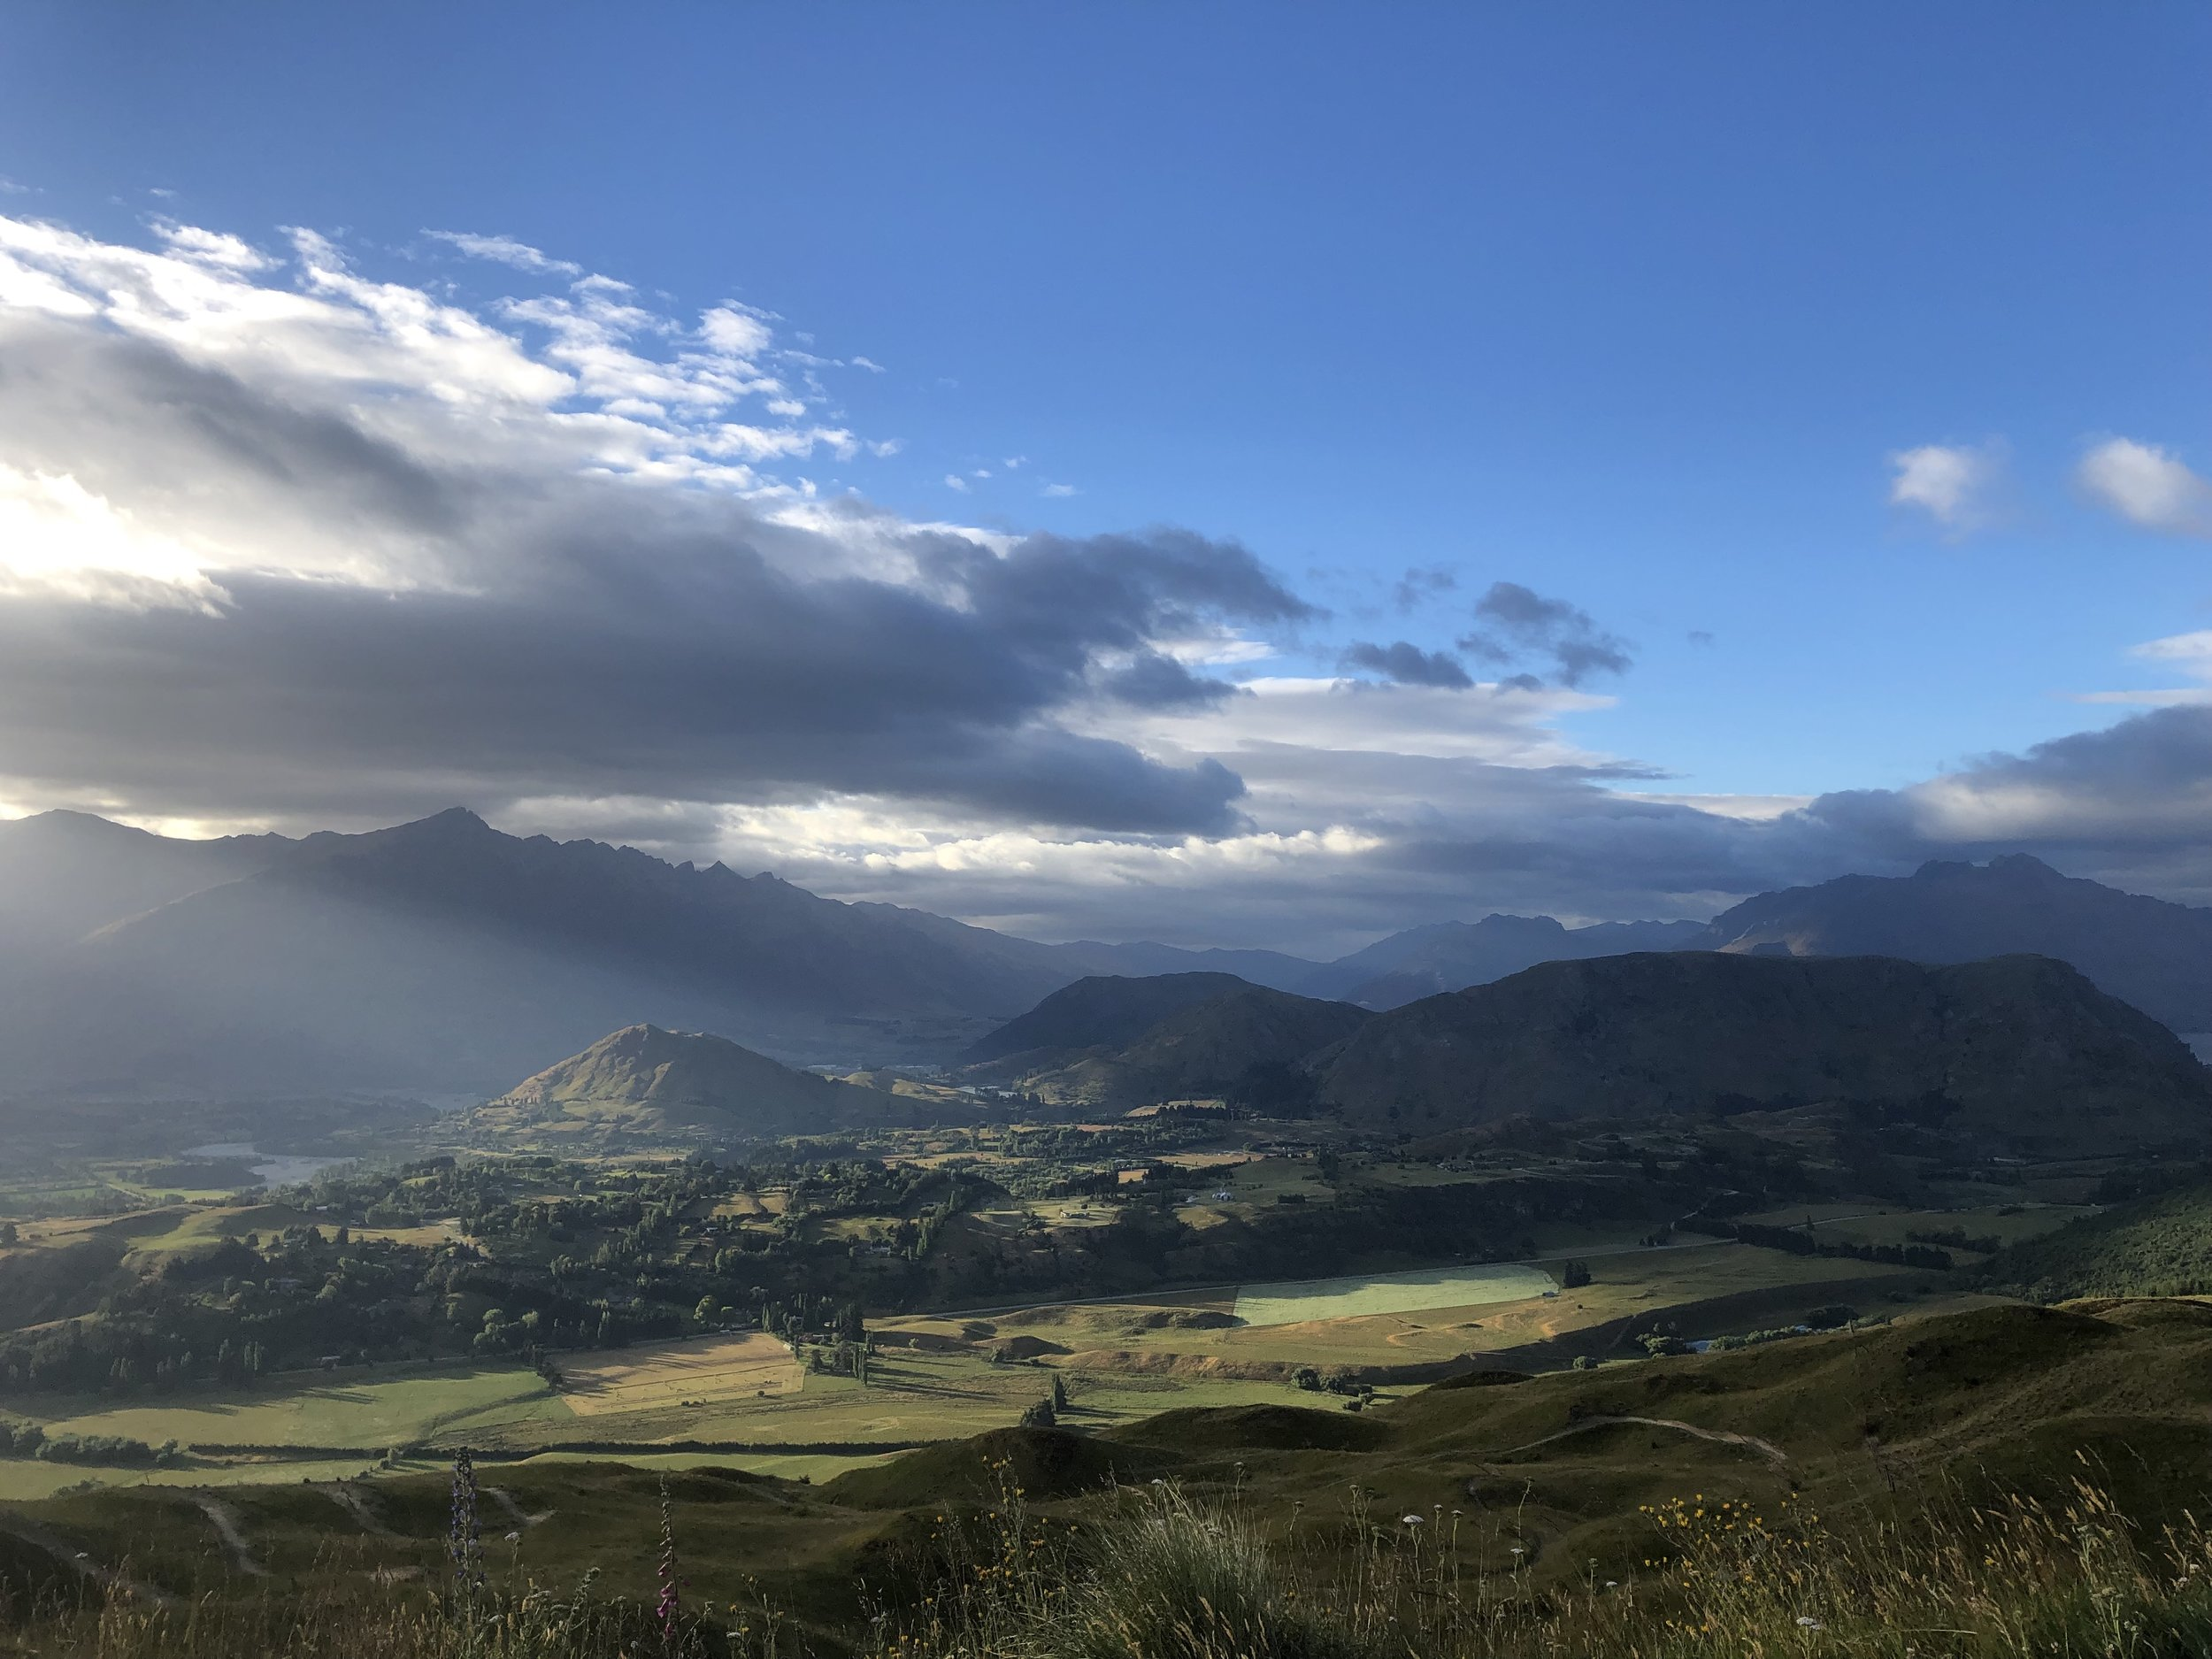 Snap taken from the Coronet Peak Road, on the 4th January 2019, mid-reflections.